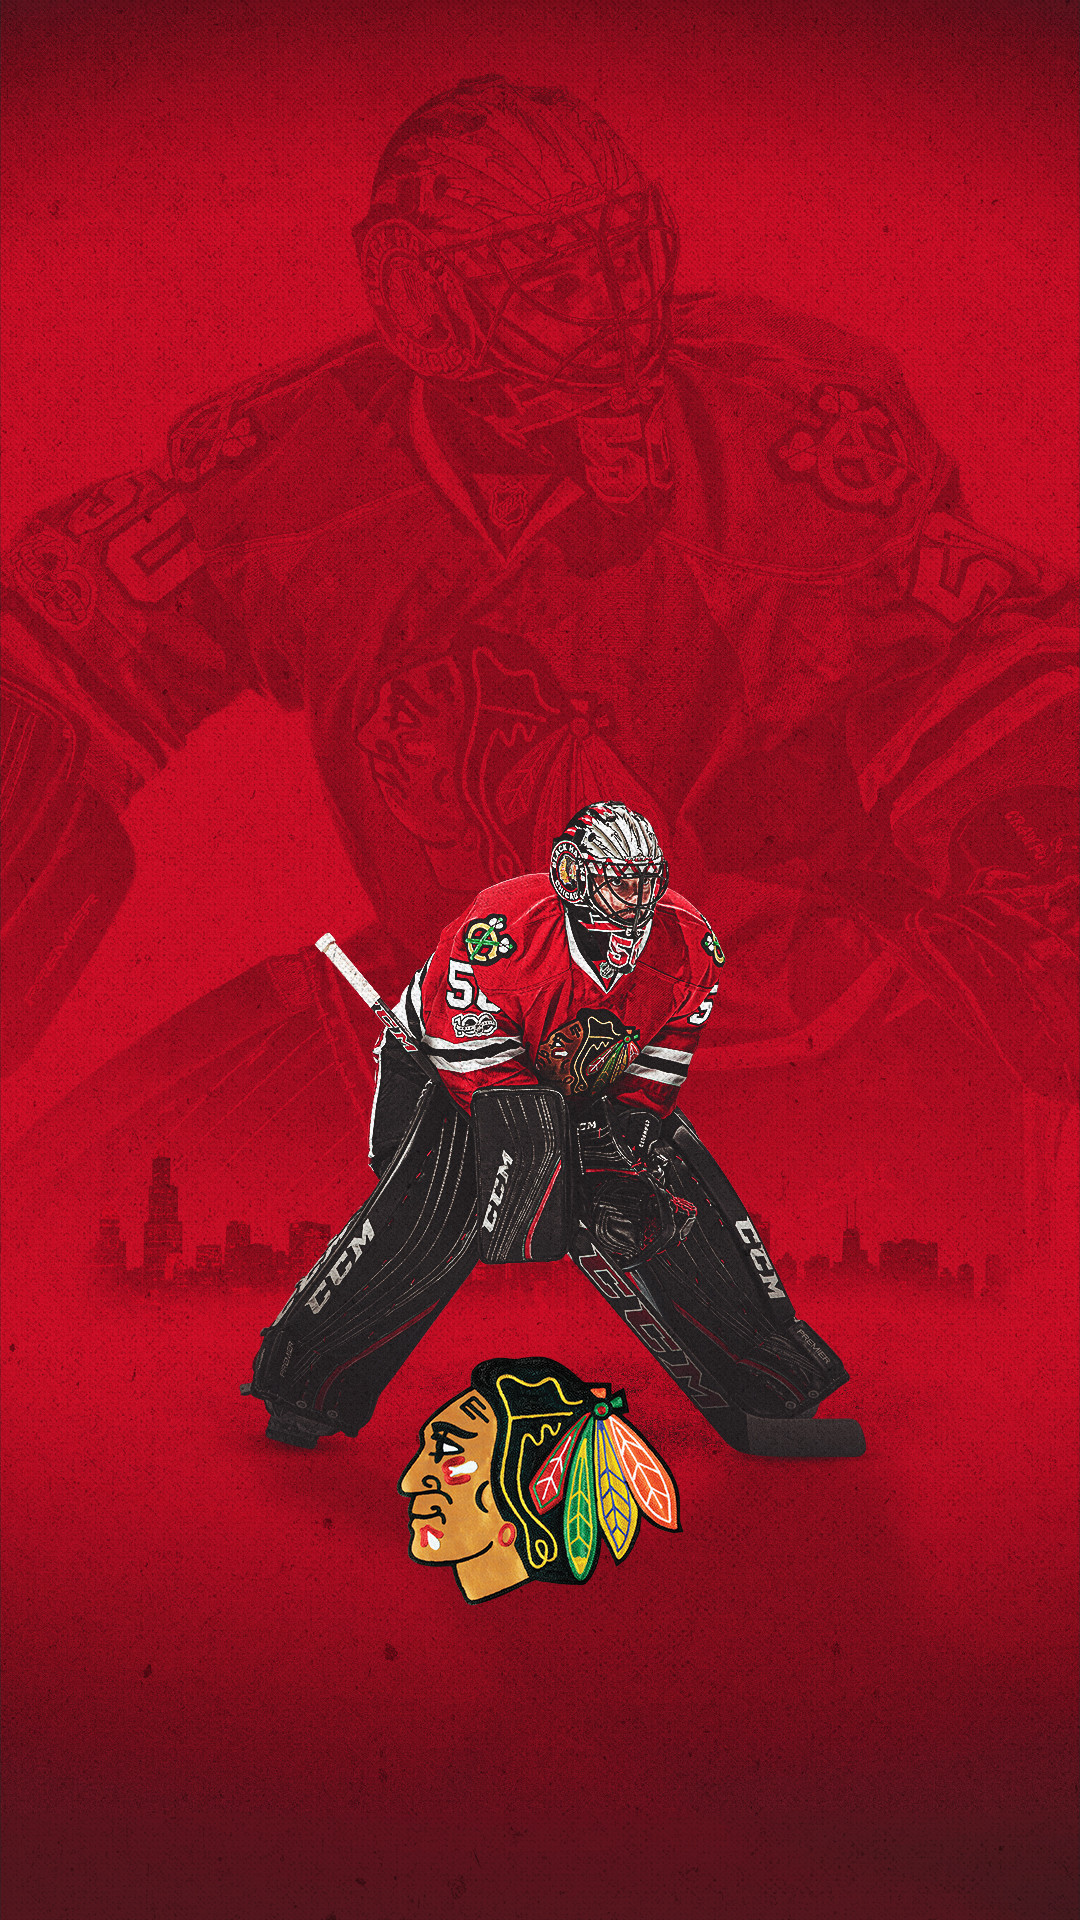 Chicago blackhawks wallpaper 72 images - Hawk iphone wallpaper ...